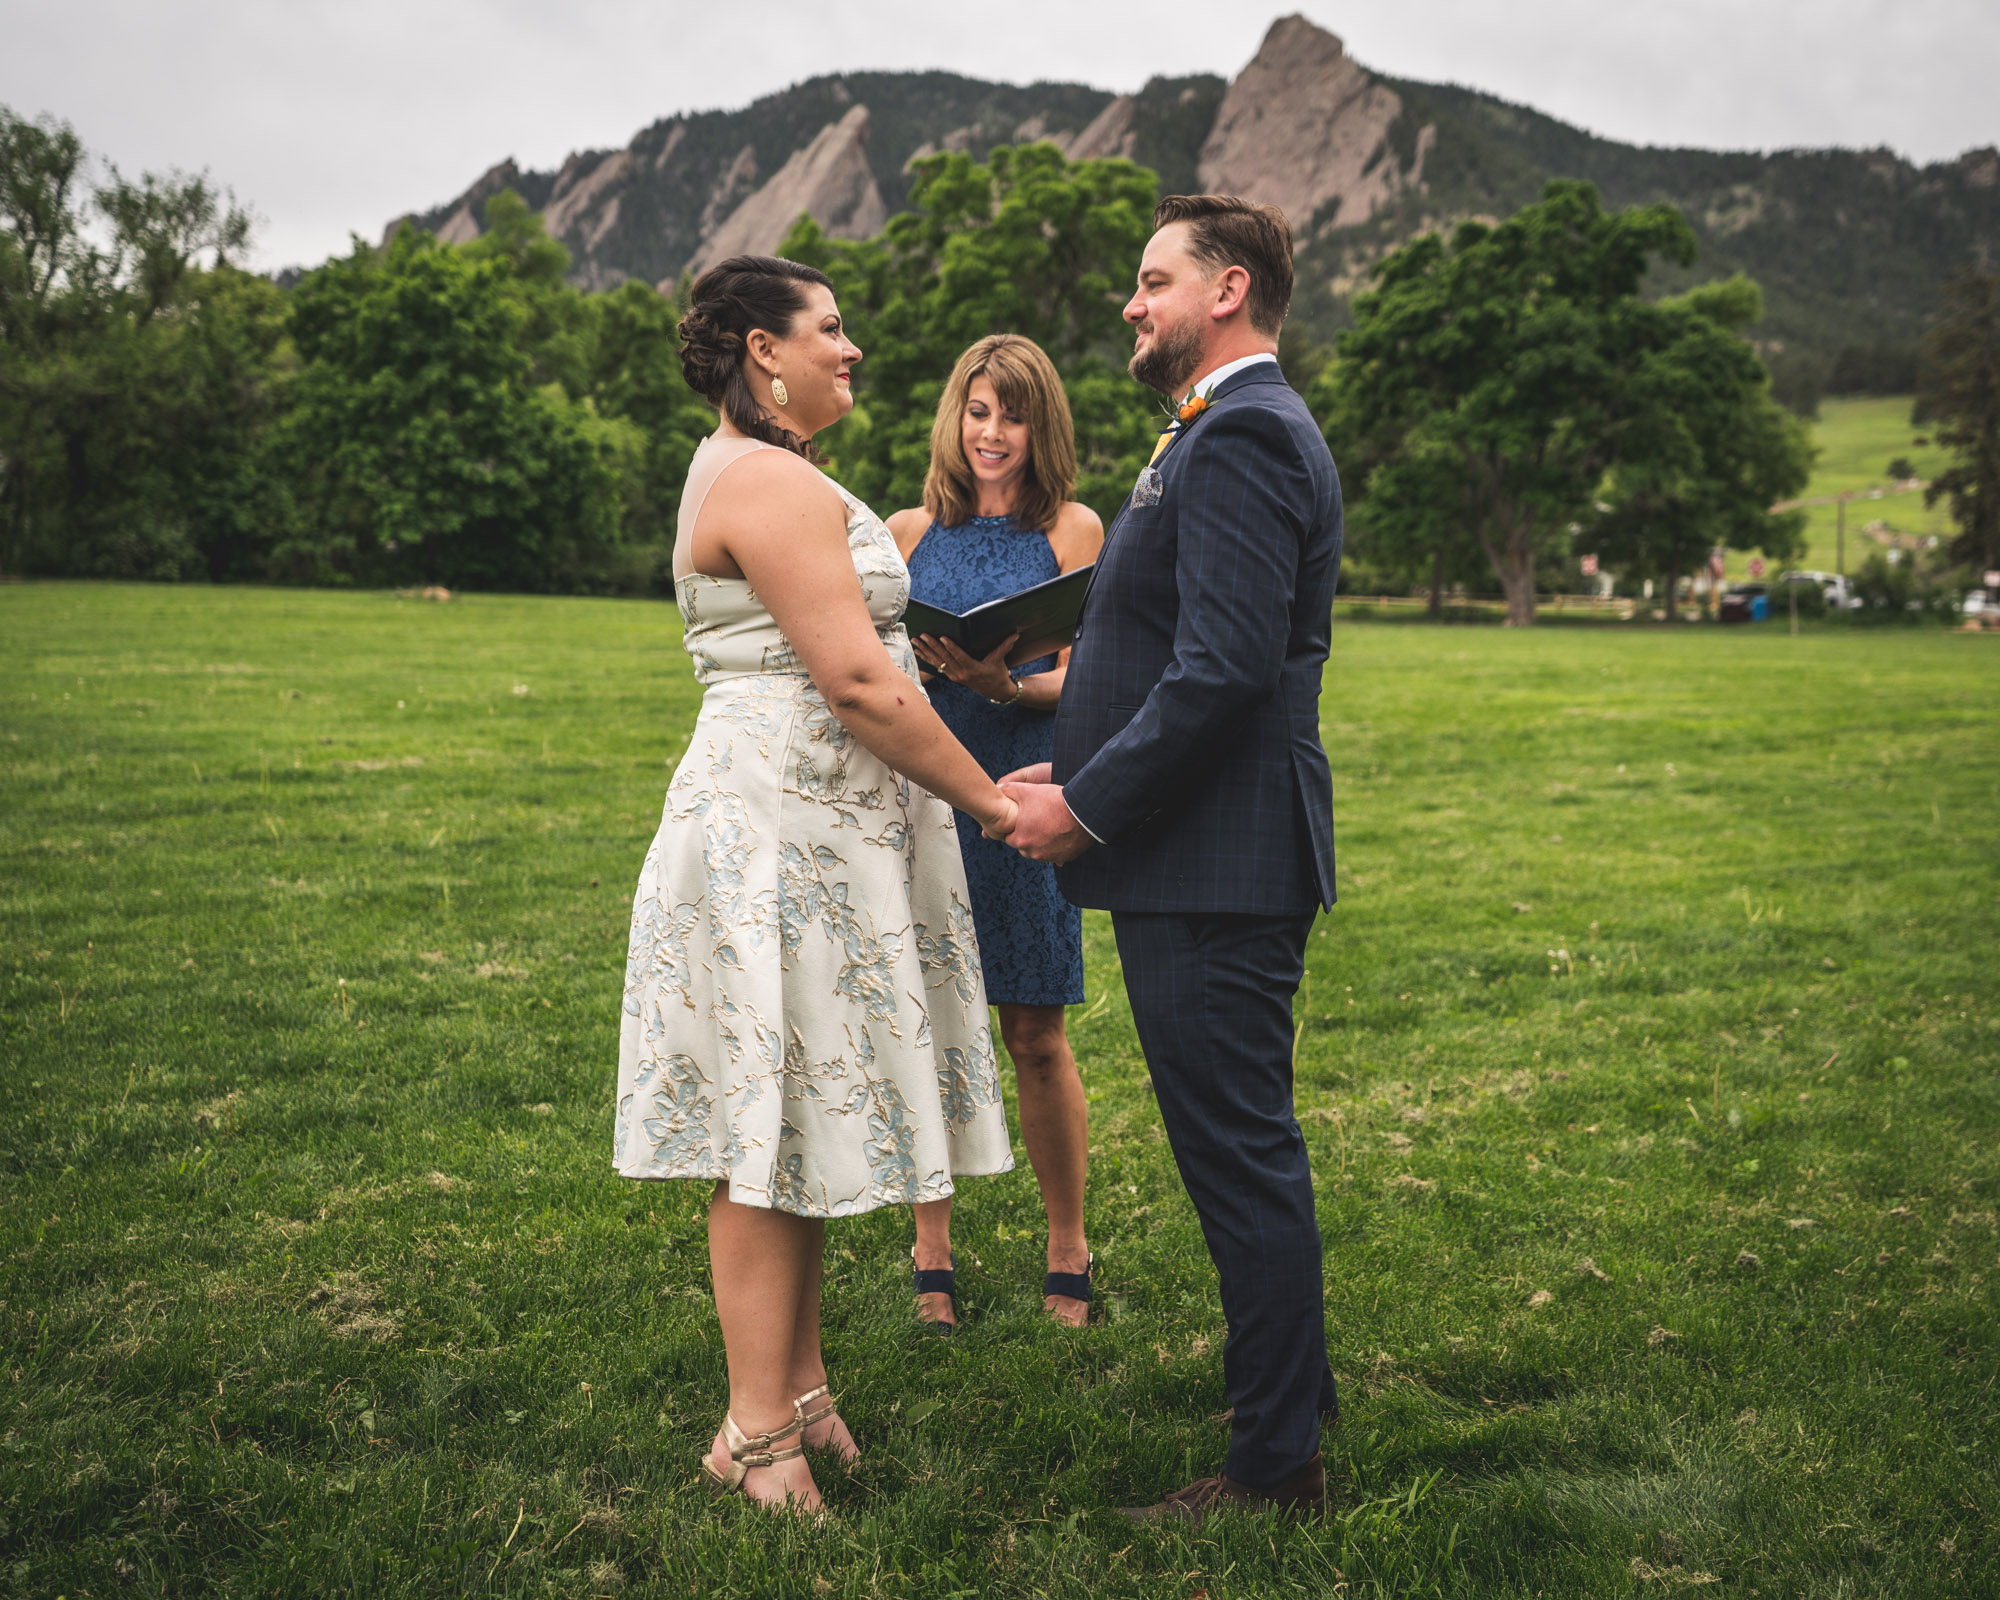 Color photo of a bride and groom getting married in deep green grass with the Flatirons looming in the background in Chautauqua Park in Boulder, Colorado.